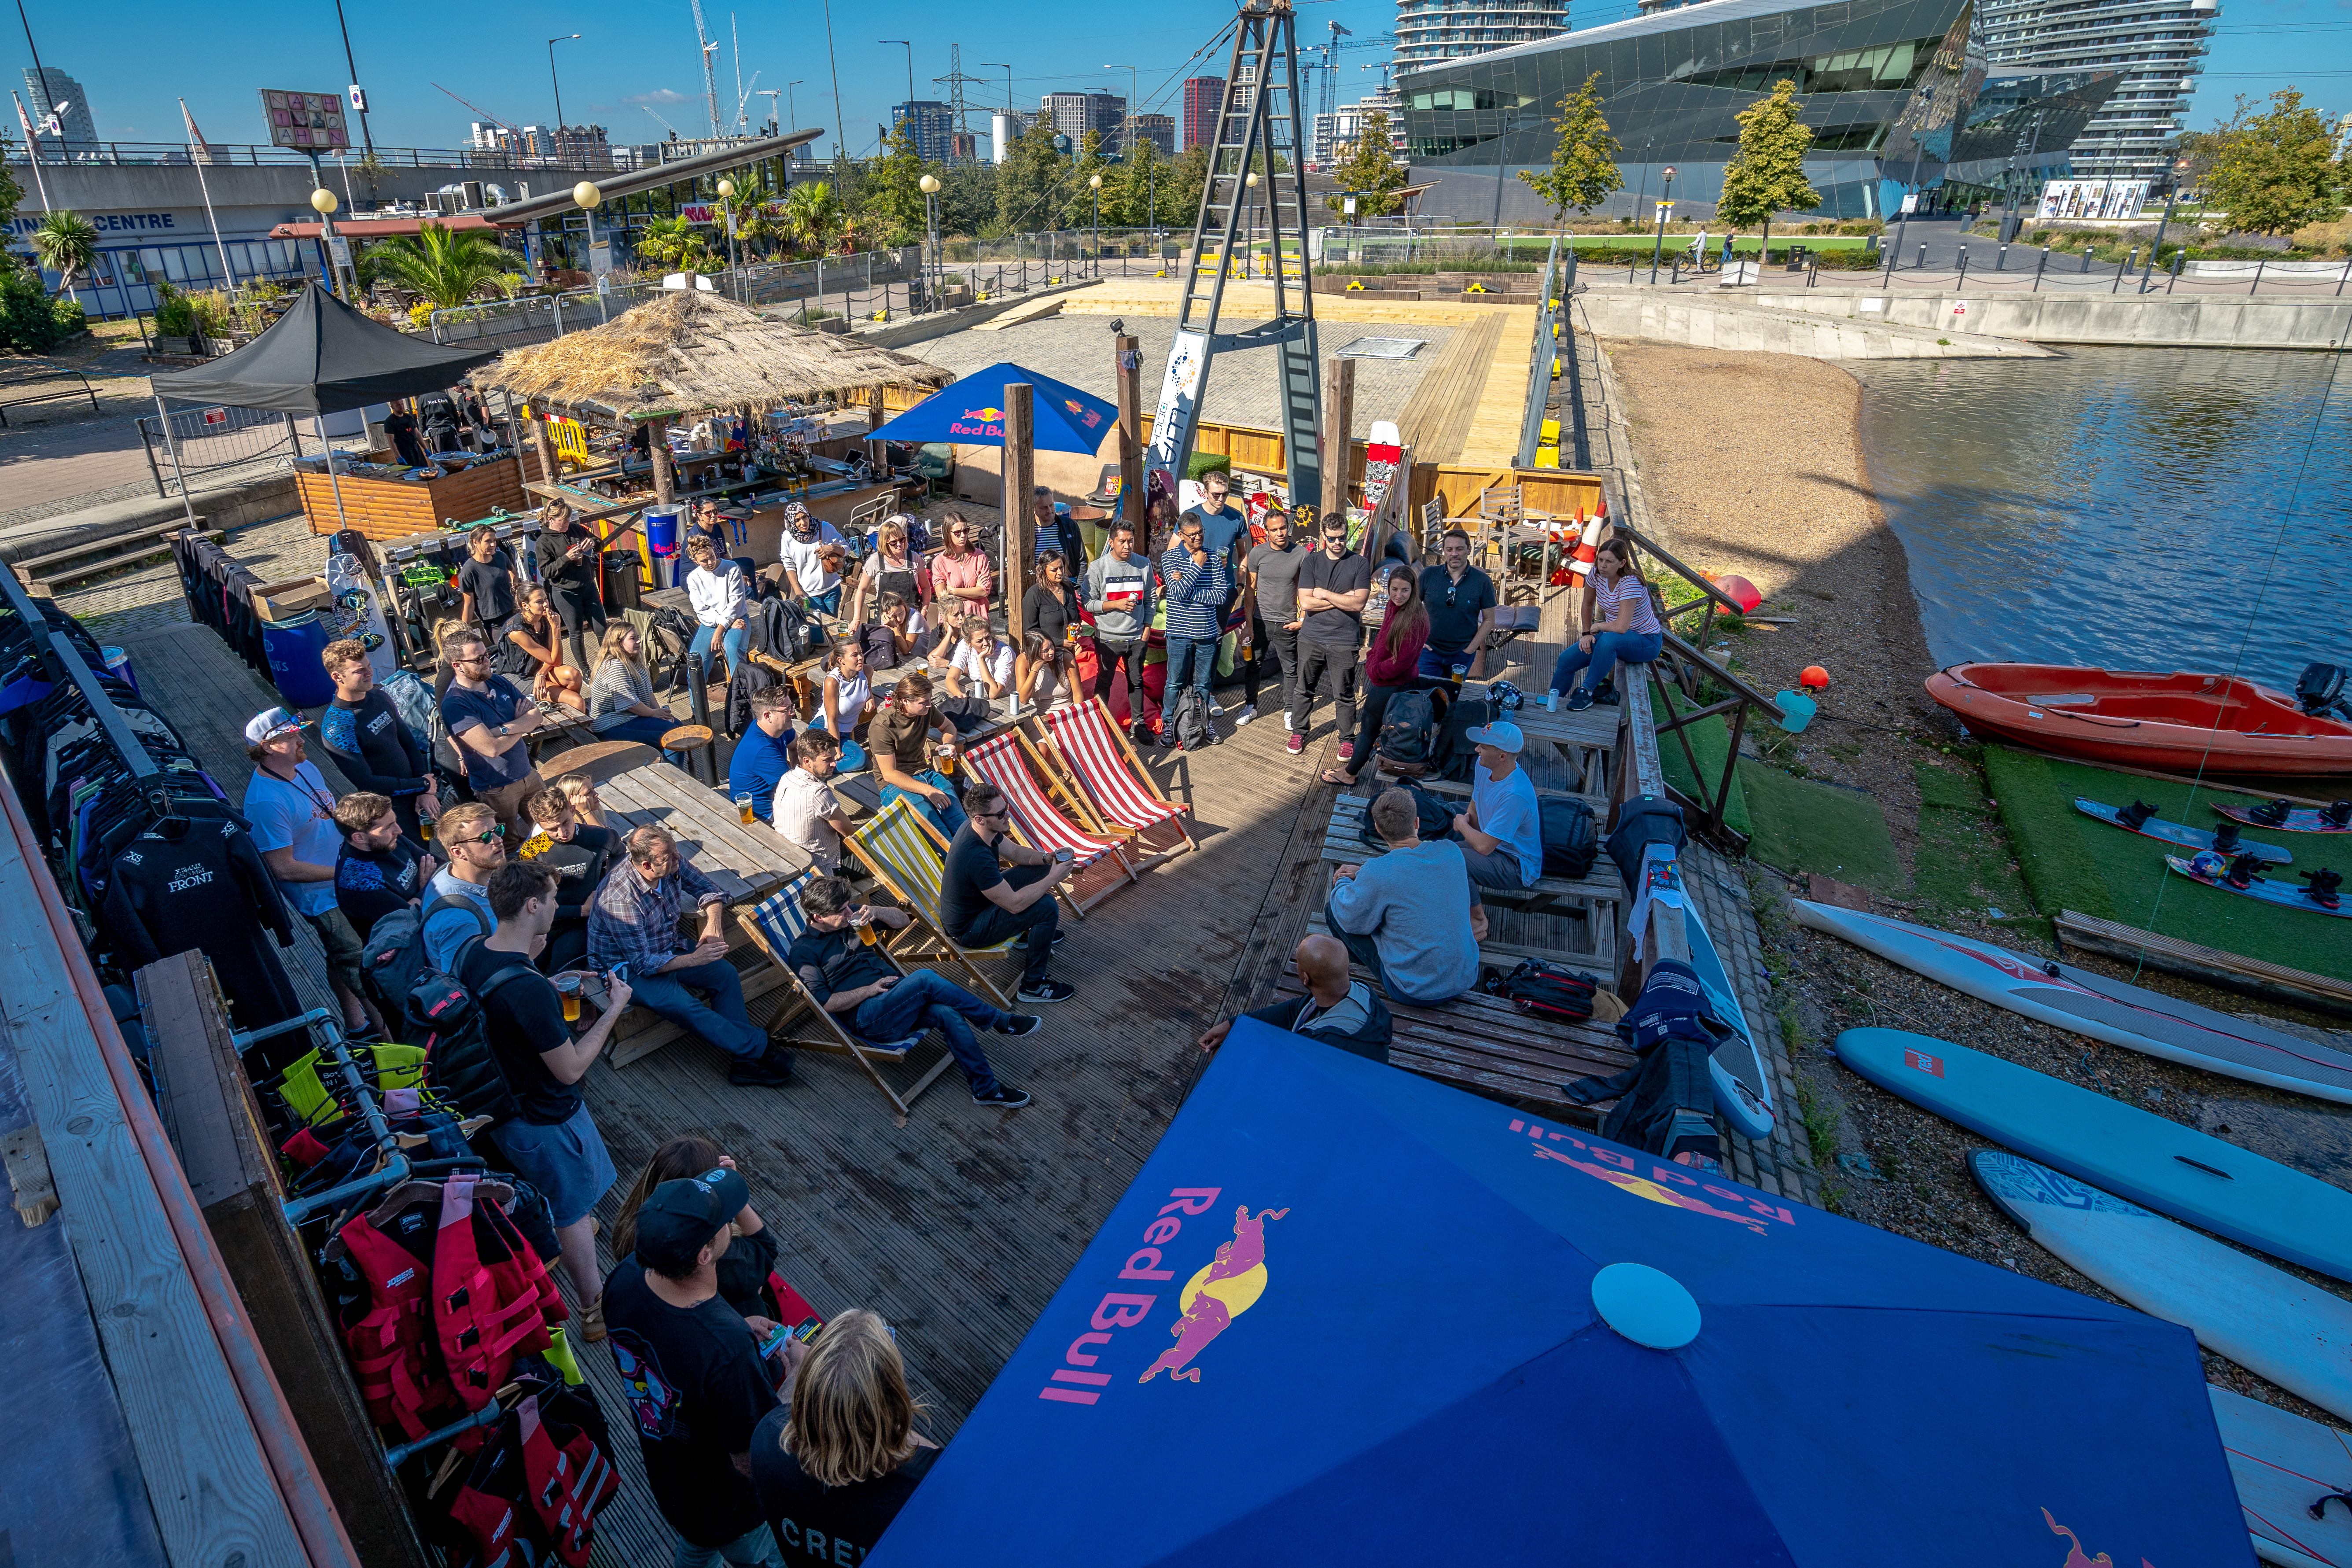 Summer event at Wakeup Docklands